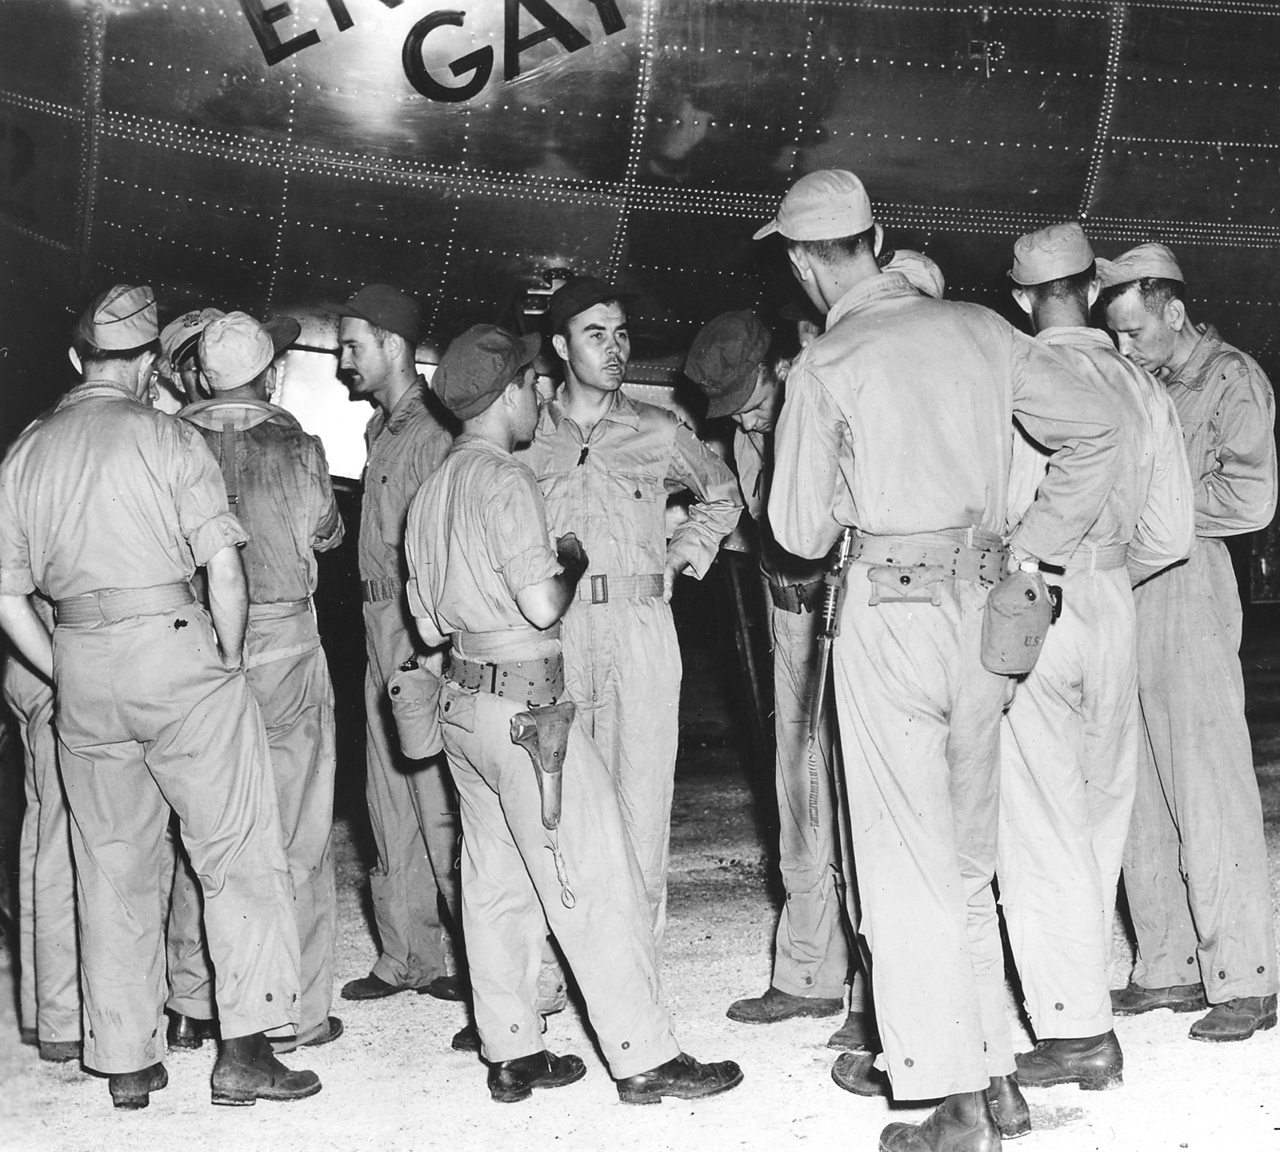 Enola Gay crew members prepare for their flight to Hiroshima.